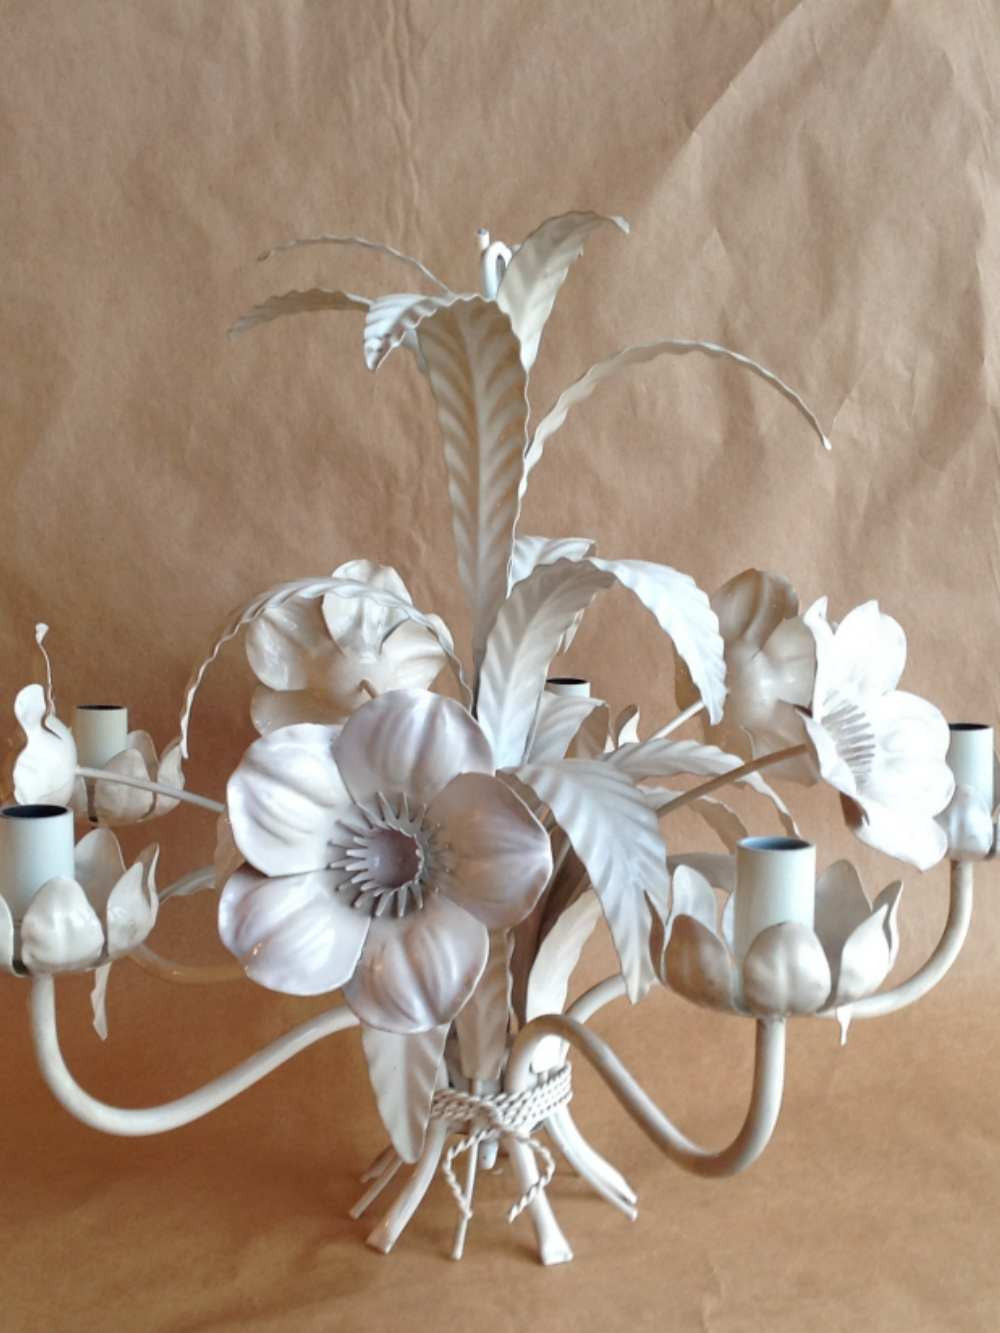 Vintage tole chandelier lavender and white vintage tole chandelier lavender and white mercato antiques 1 arubaitofo Image collections